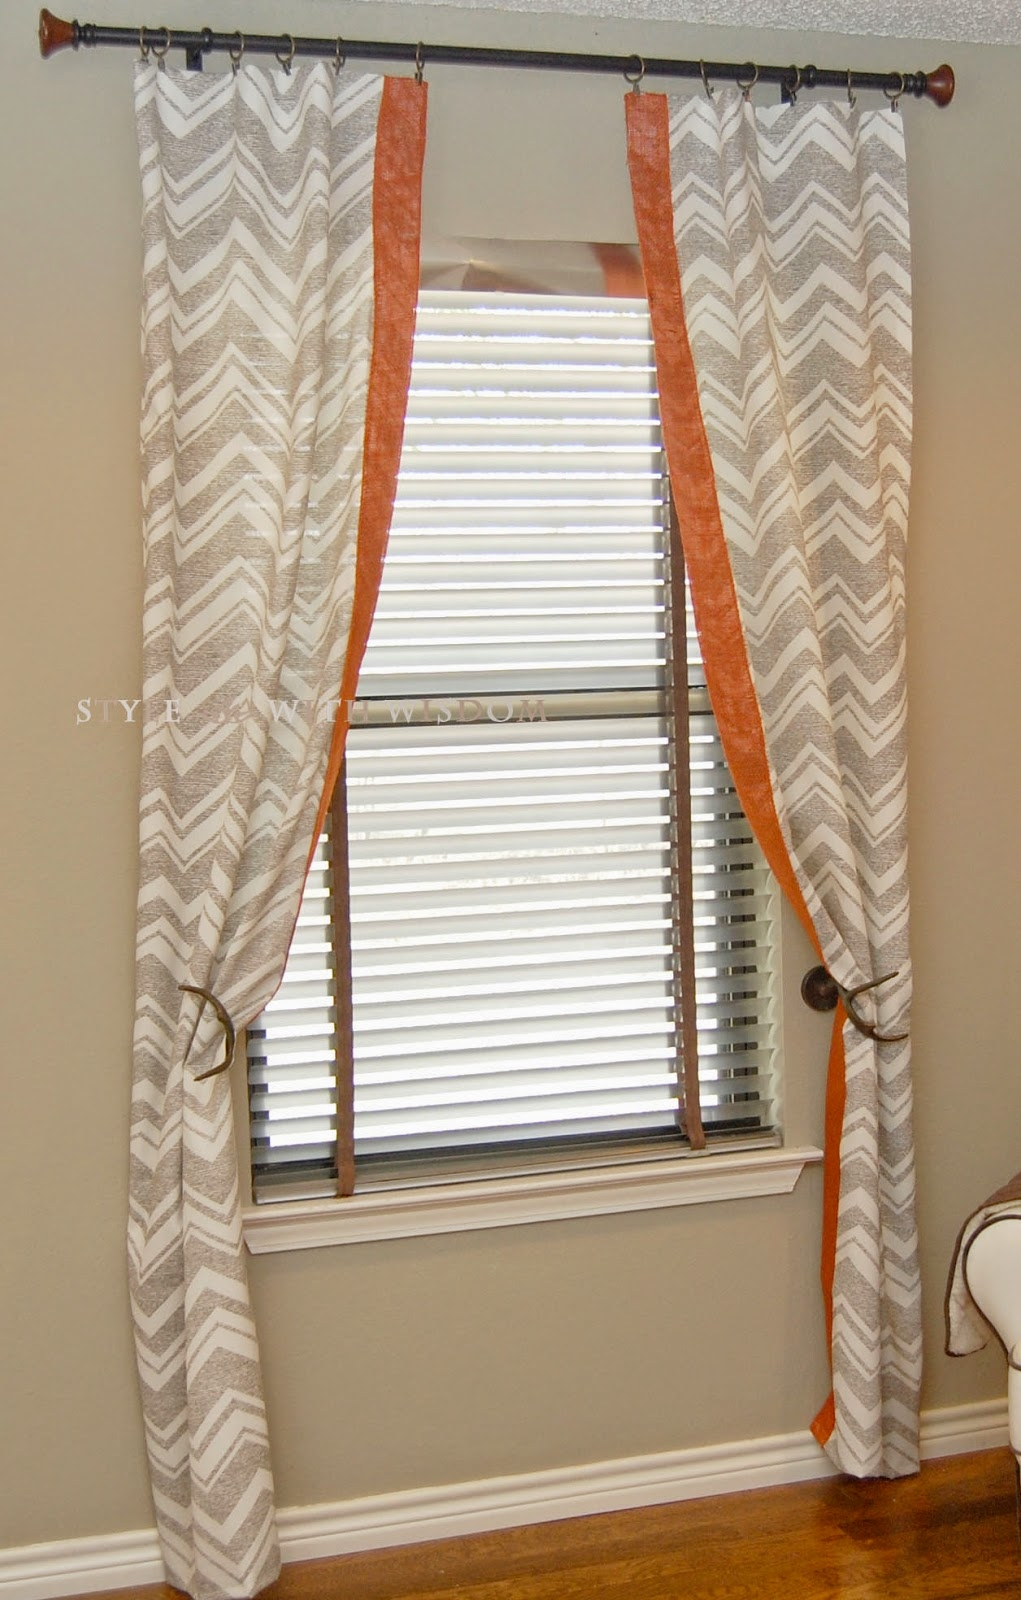 Woodland Nursery Chevron Curtains Designs I Love Pinterest Within Nursery Curtains (Image 14 of 15)